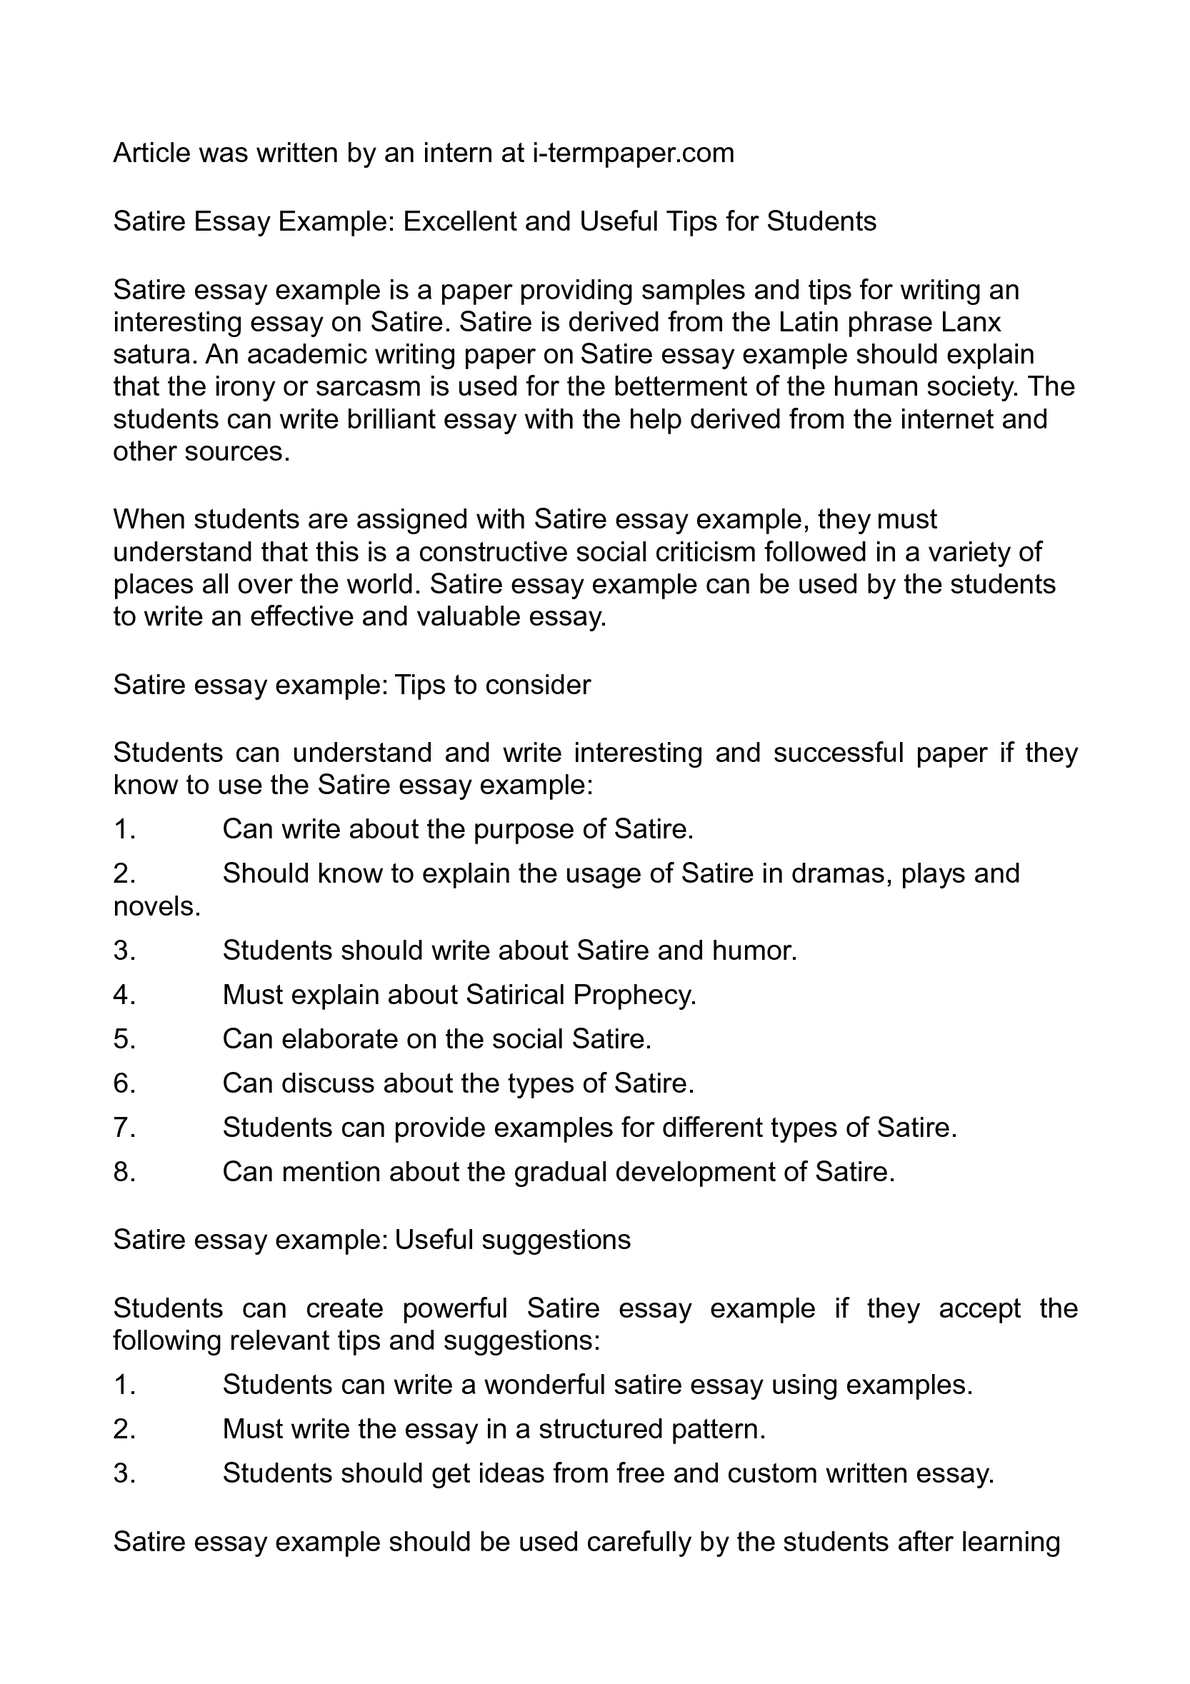 satire essay topics satirical essay topics gxart example of satirical essay topics gxart orgexamples of satire. Resume Example. Resume CV Cover Letter